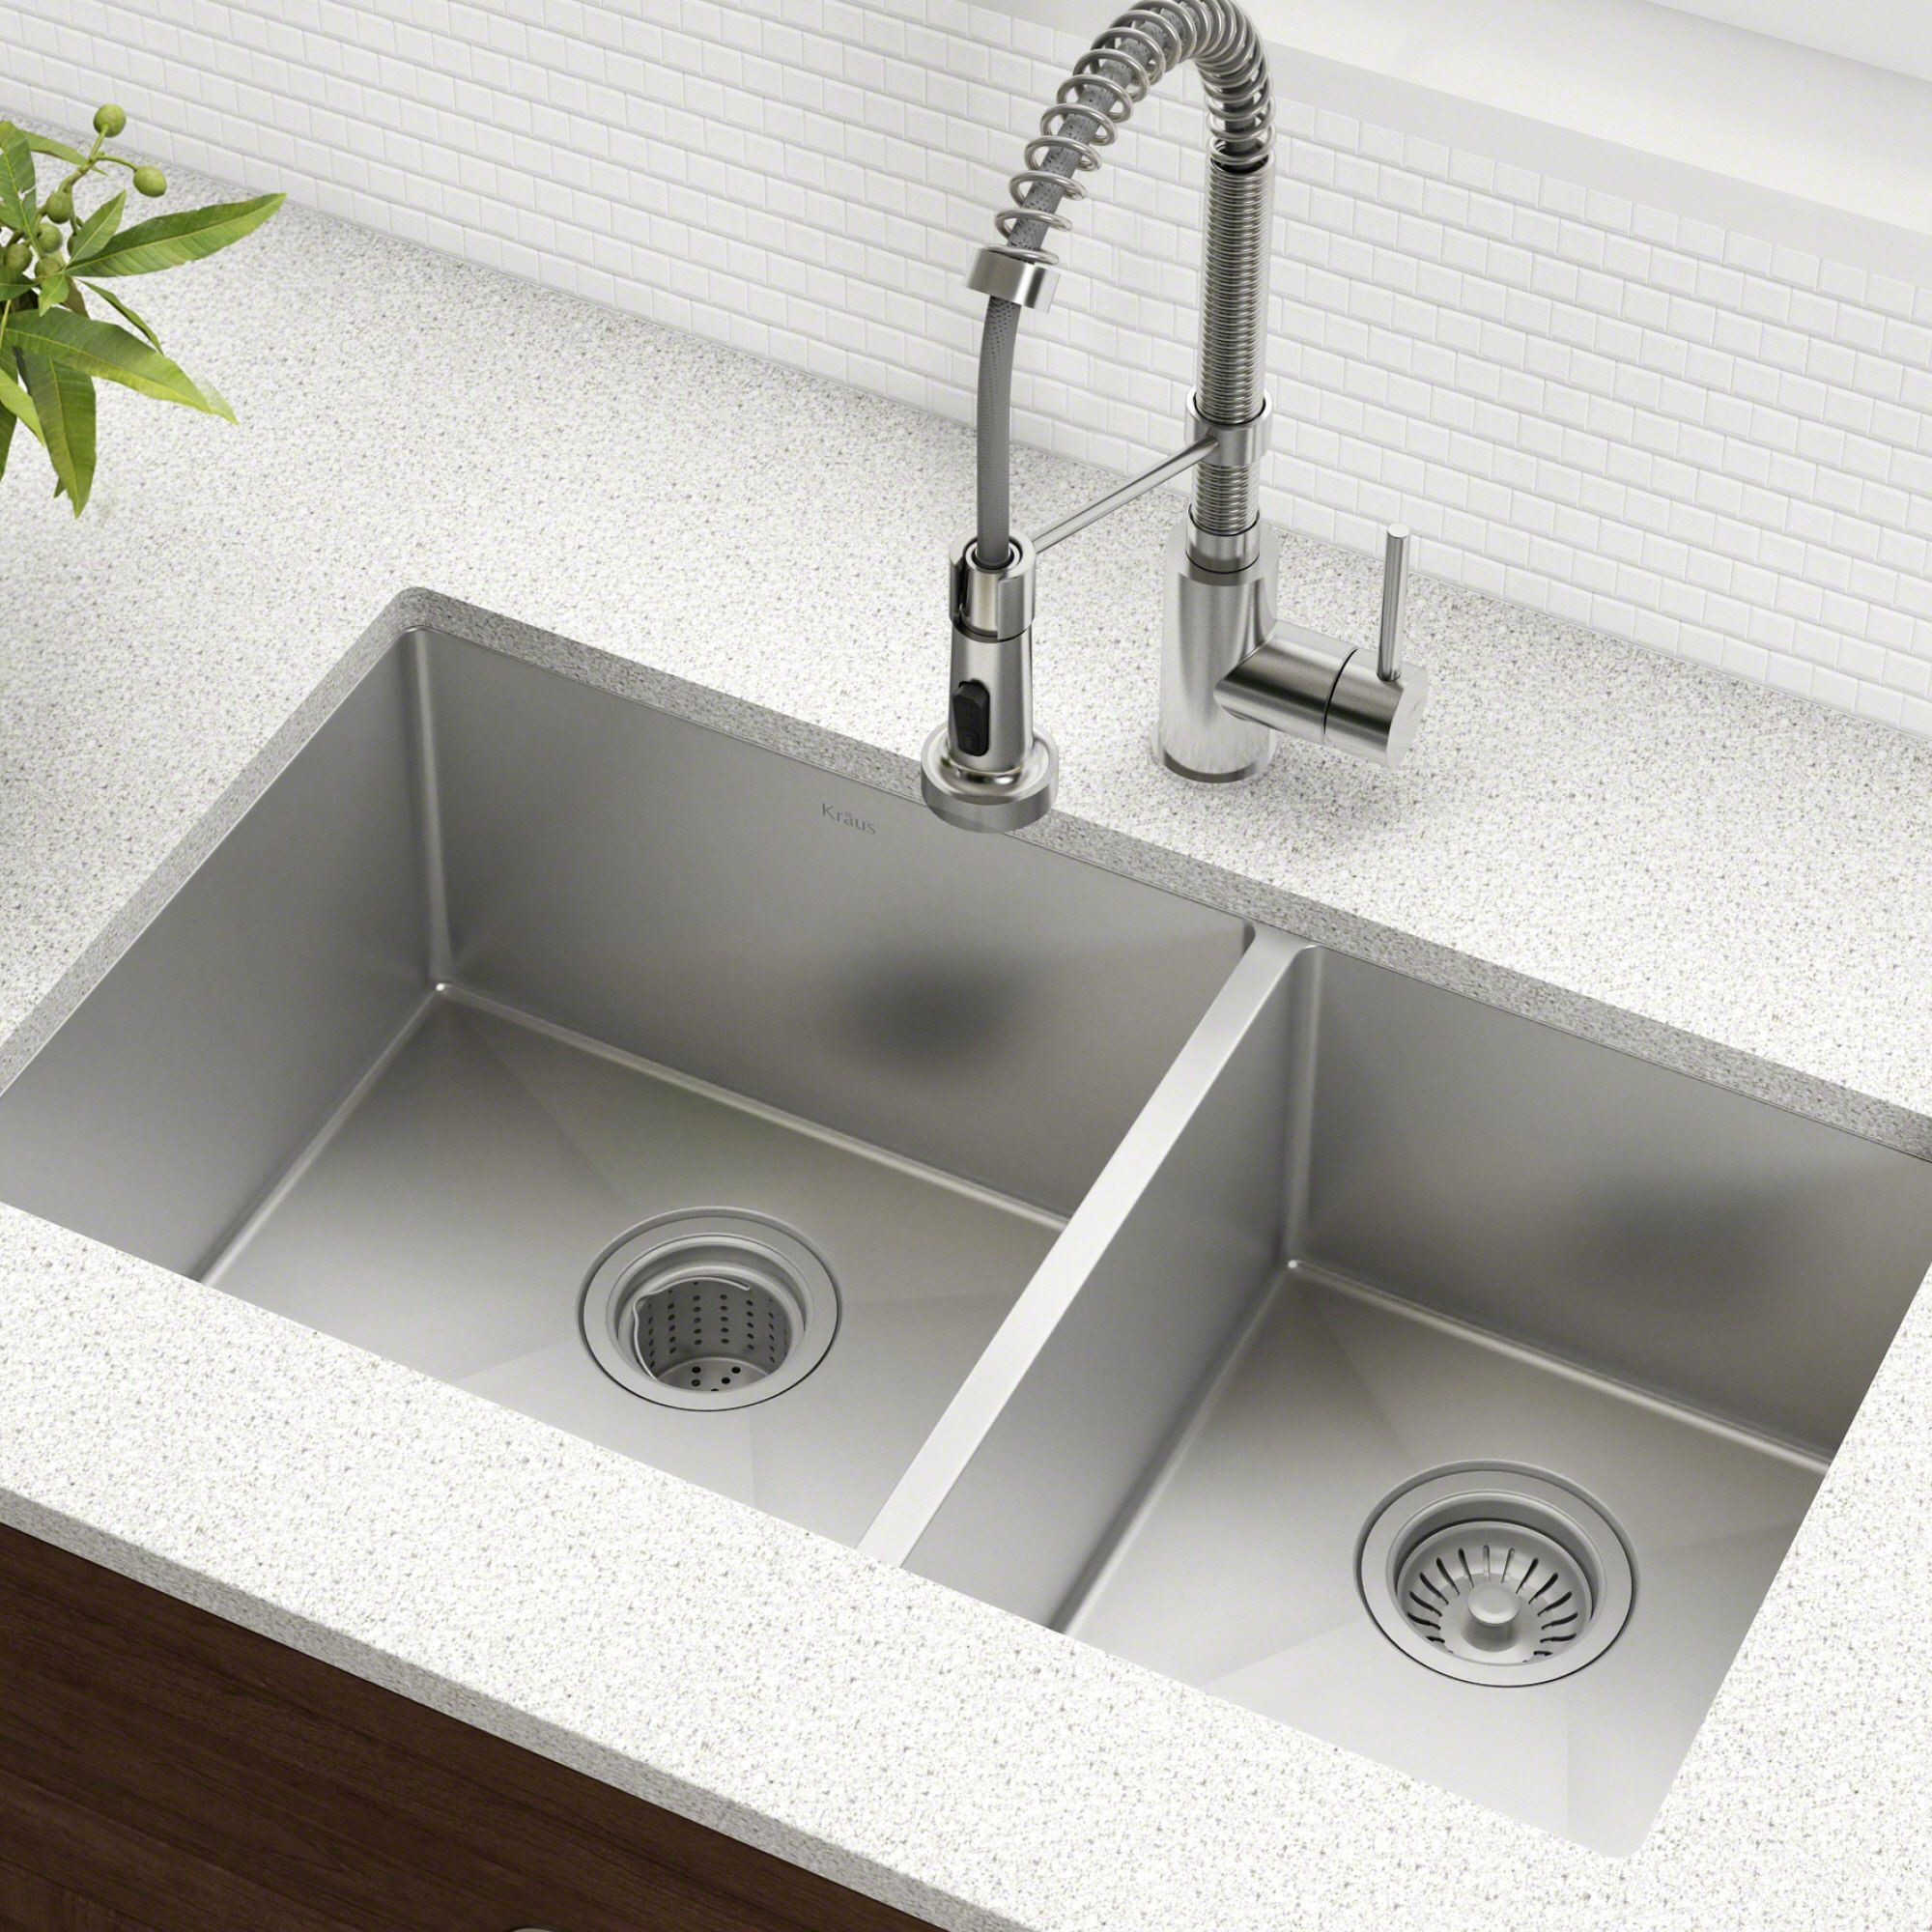 33 Undermount 16 Gauge Stainless Steel 60 40 Double Bowl Kitchen Sink In 2020 Undermount Kitchen Sinks Double Bowl Kitchen Sink Stainless Steel Kitchen Sink